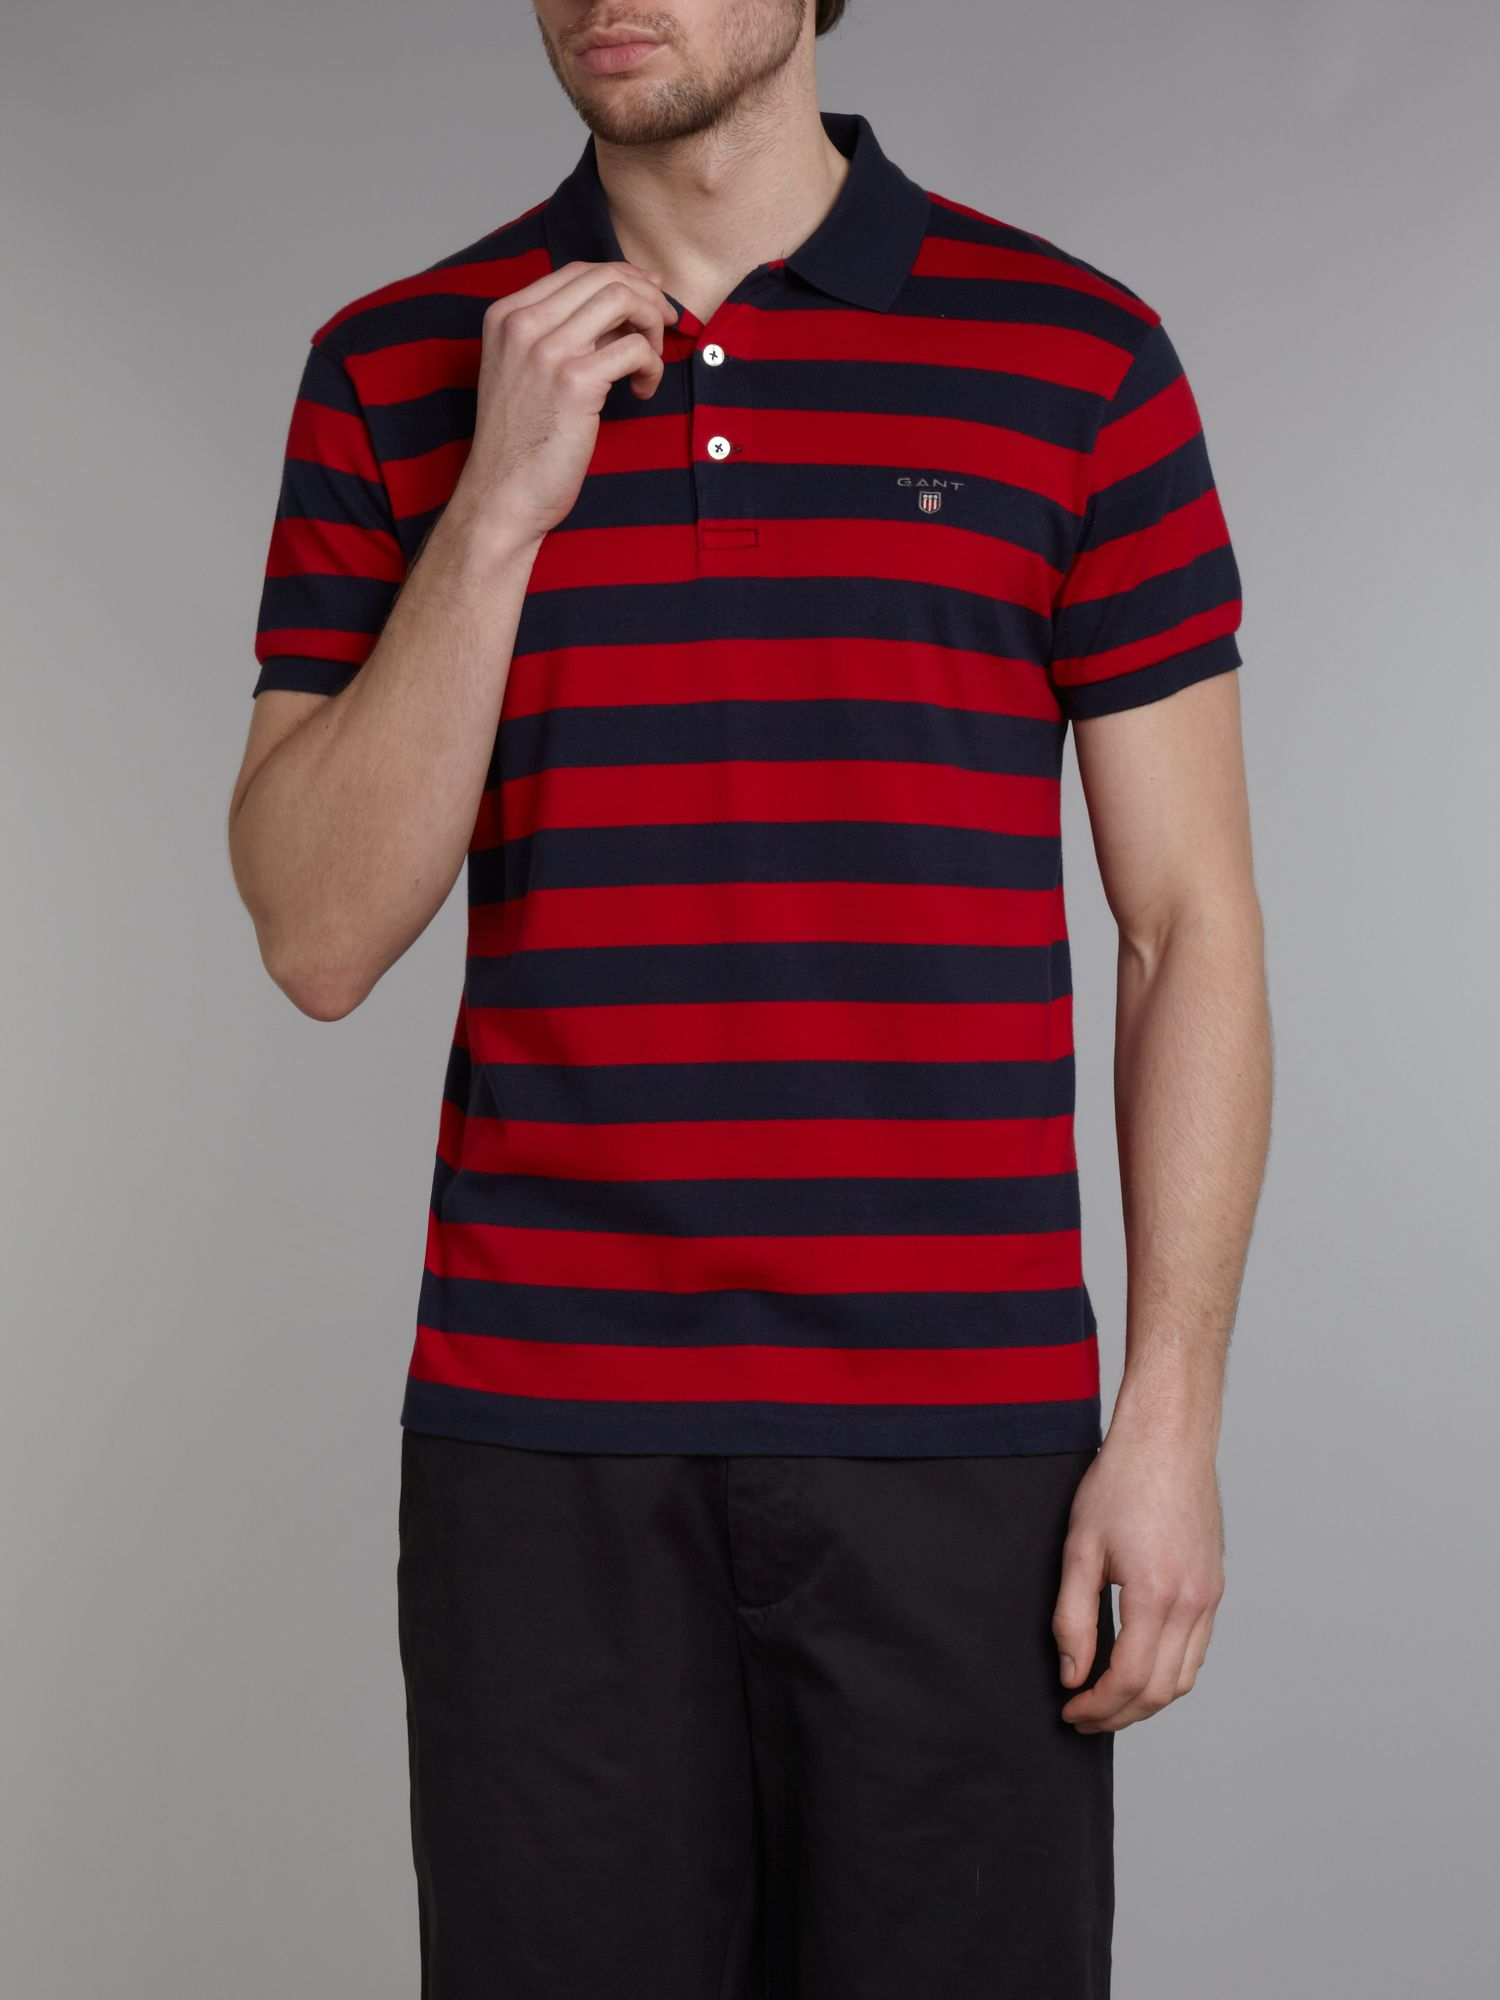 Barstripe polo shirt